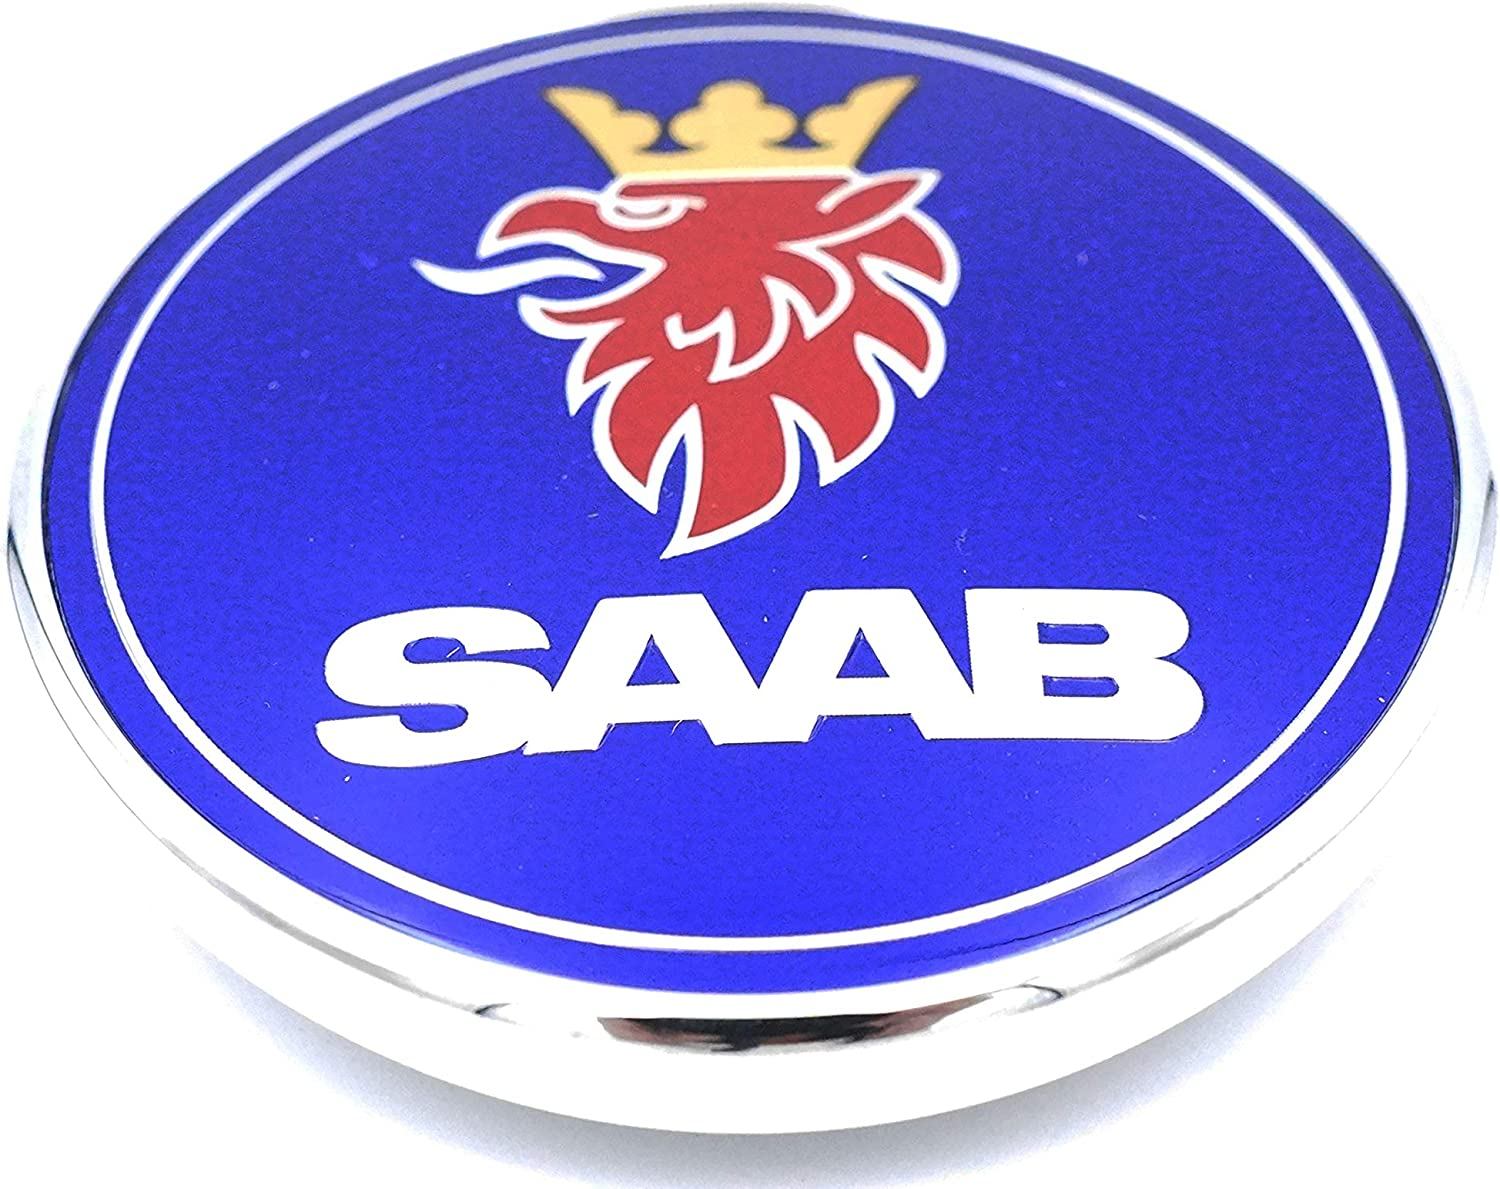 GENUINE SAAB FRONT BONNET EMBLEM BADGE 9-3 /& 9-5 NEW 12844161